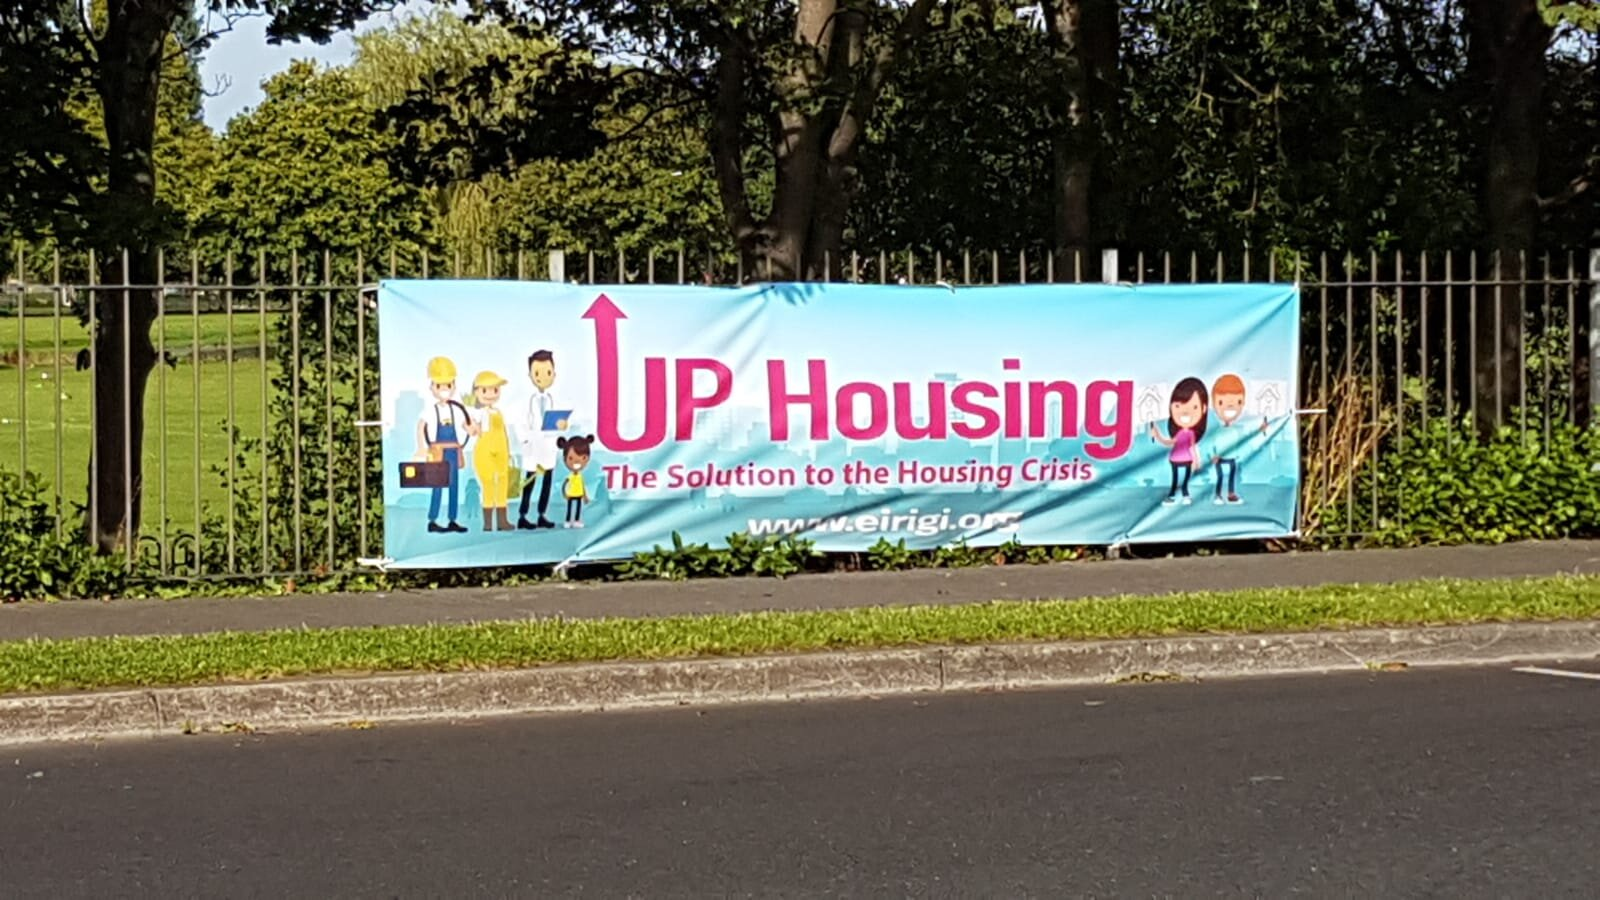 UP Housing banner on display in Nutgrove, Dublin.